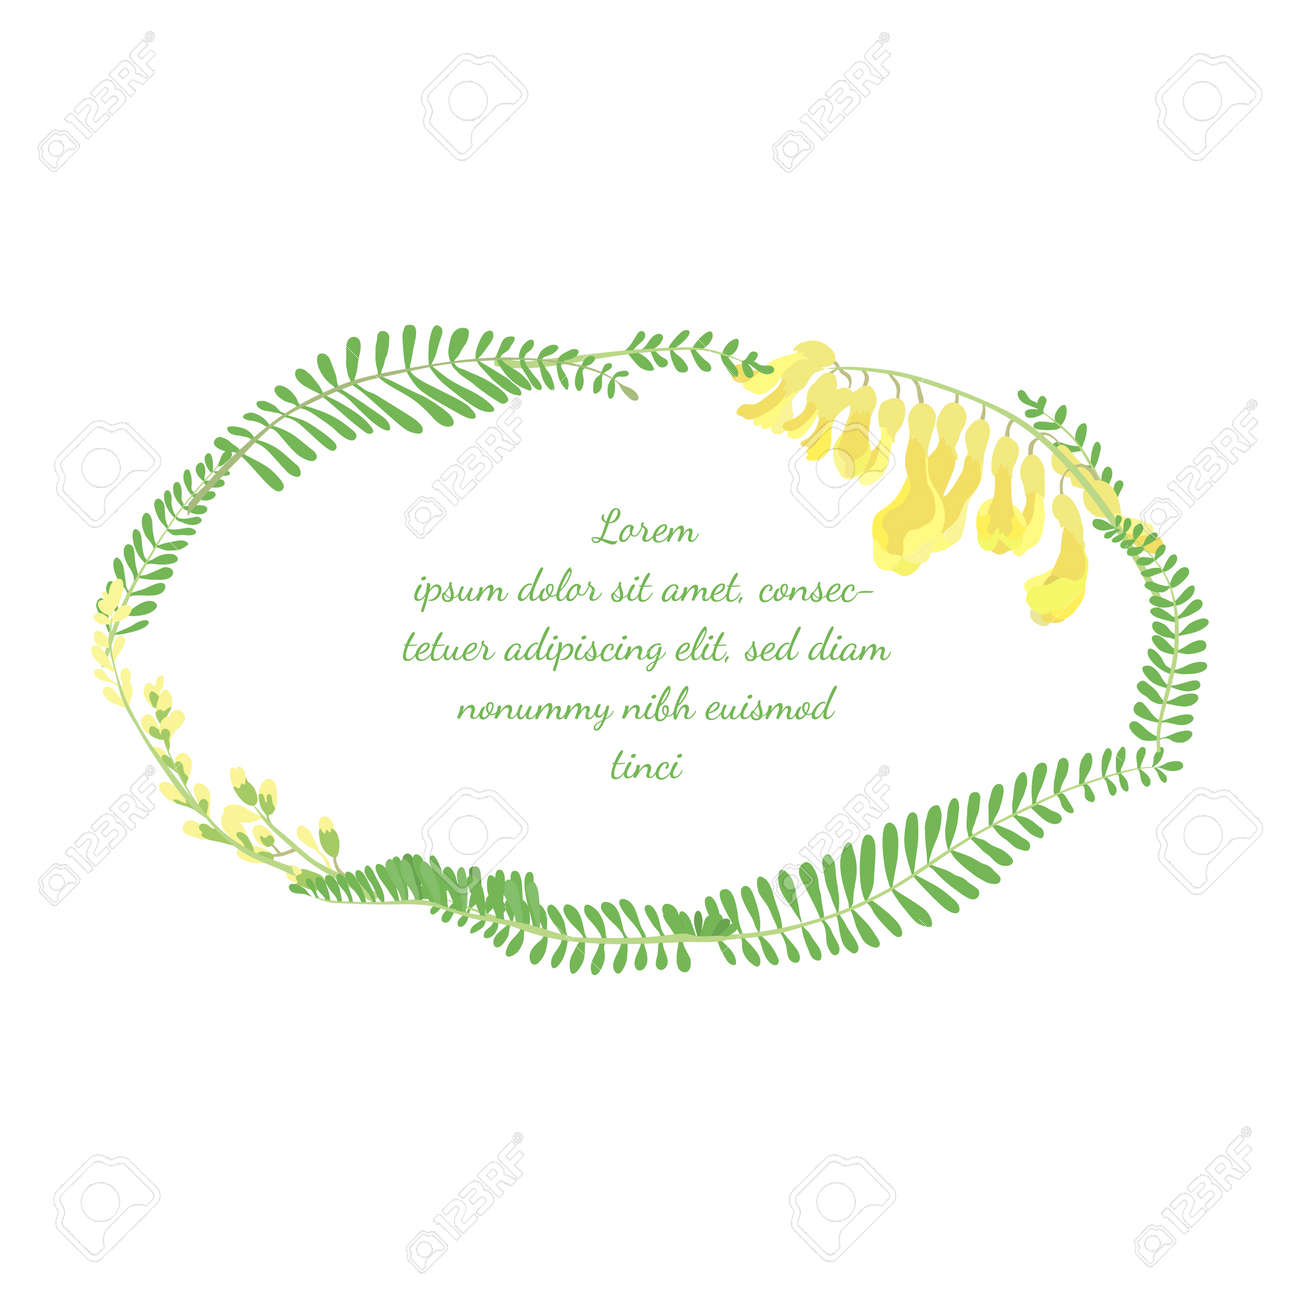 Frame with Elliptical Shape made with Hand Drawn Colorful Leaves and Flowers of a Astragalus Propinquus. Vector Illustration for Traditional Medicine Products, Posters, Designs. - 166149136